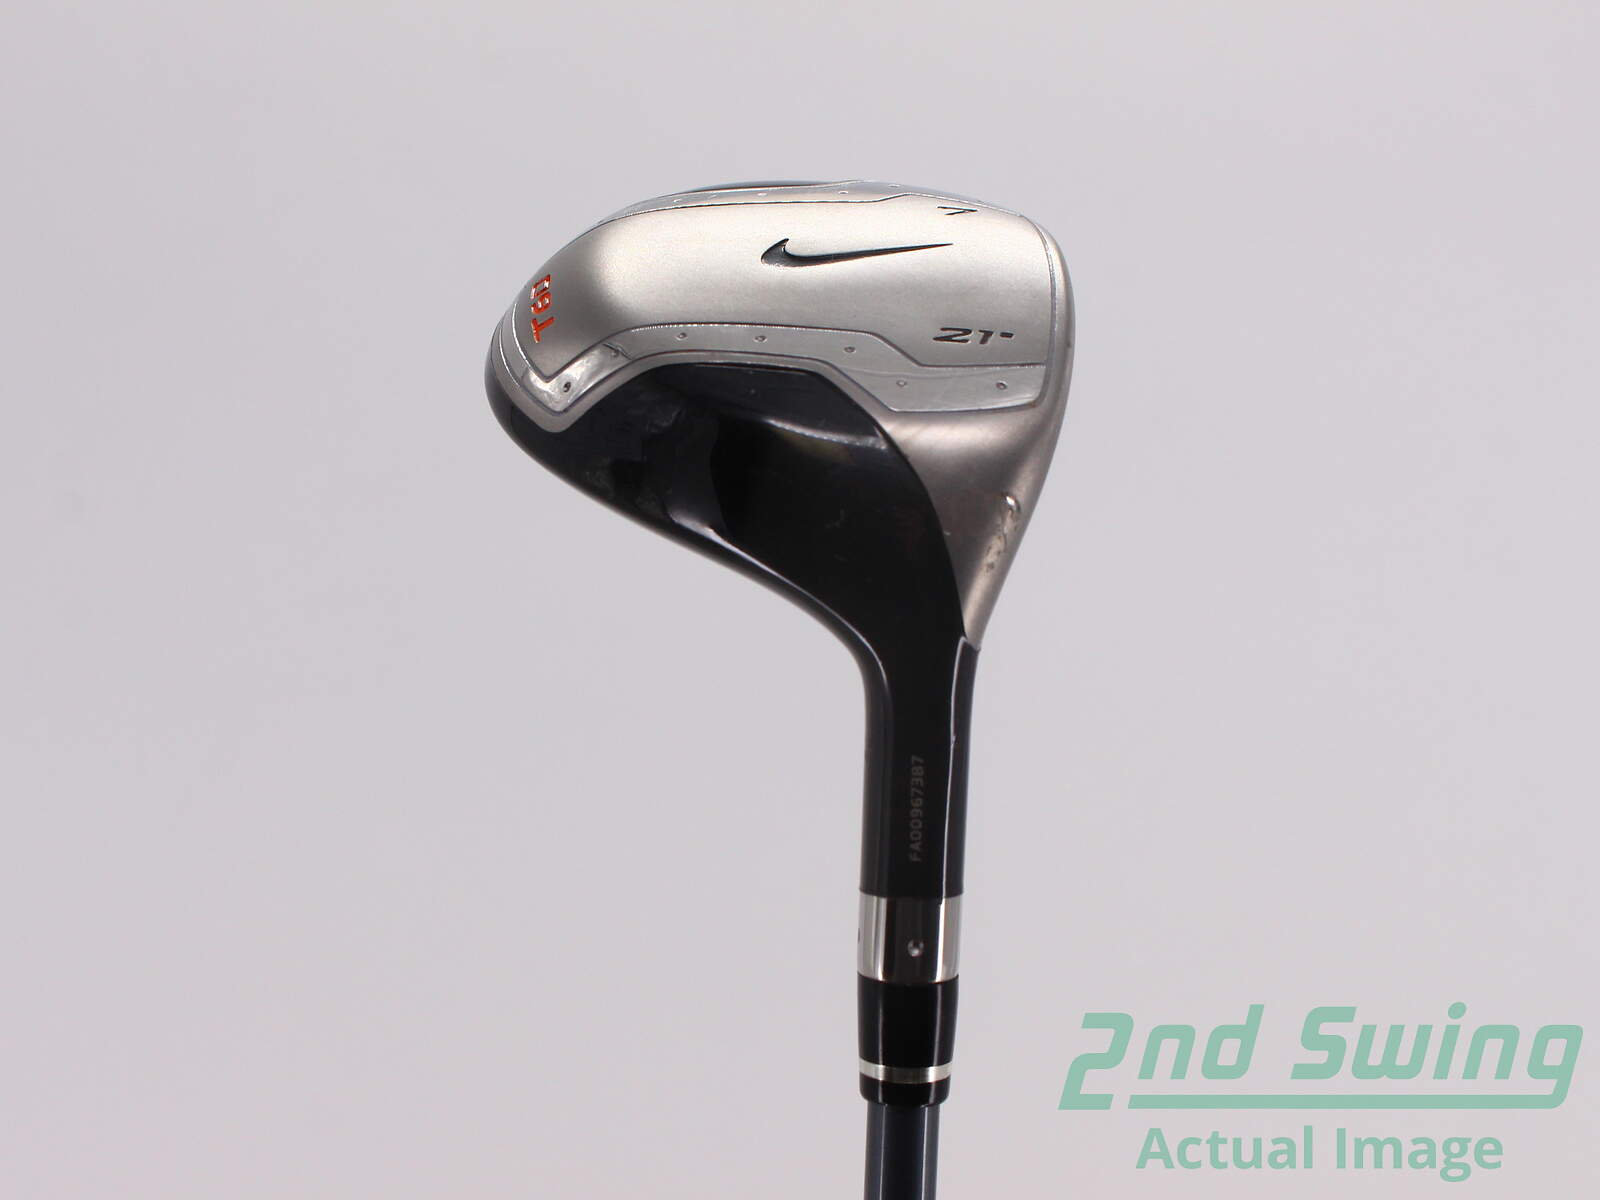 Scully imperdonable Bloquear  Used Nike Ignite T60 Fairway Wood 7 Wood 7W 21° Nike UST Ignite Graphite  Ladies Right Handed 40.5in Used Golf Club | 2nd Swing Golf